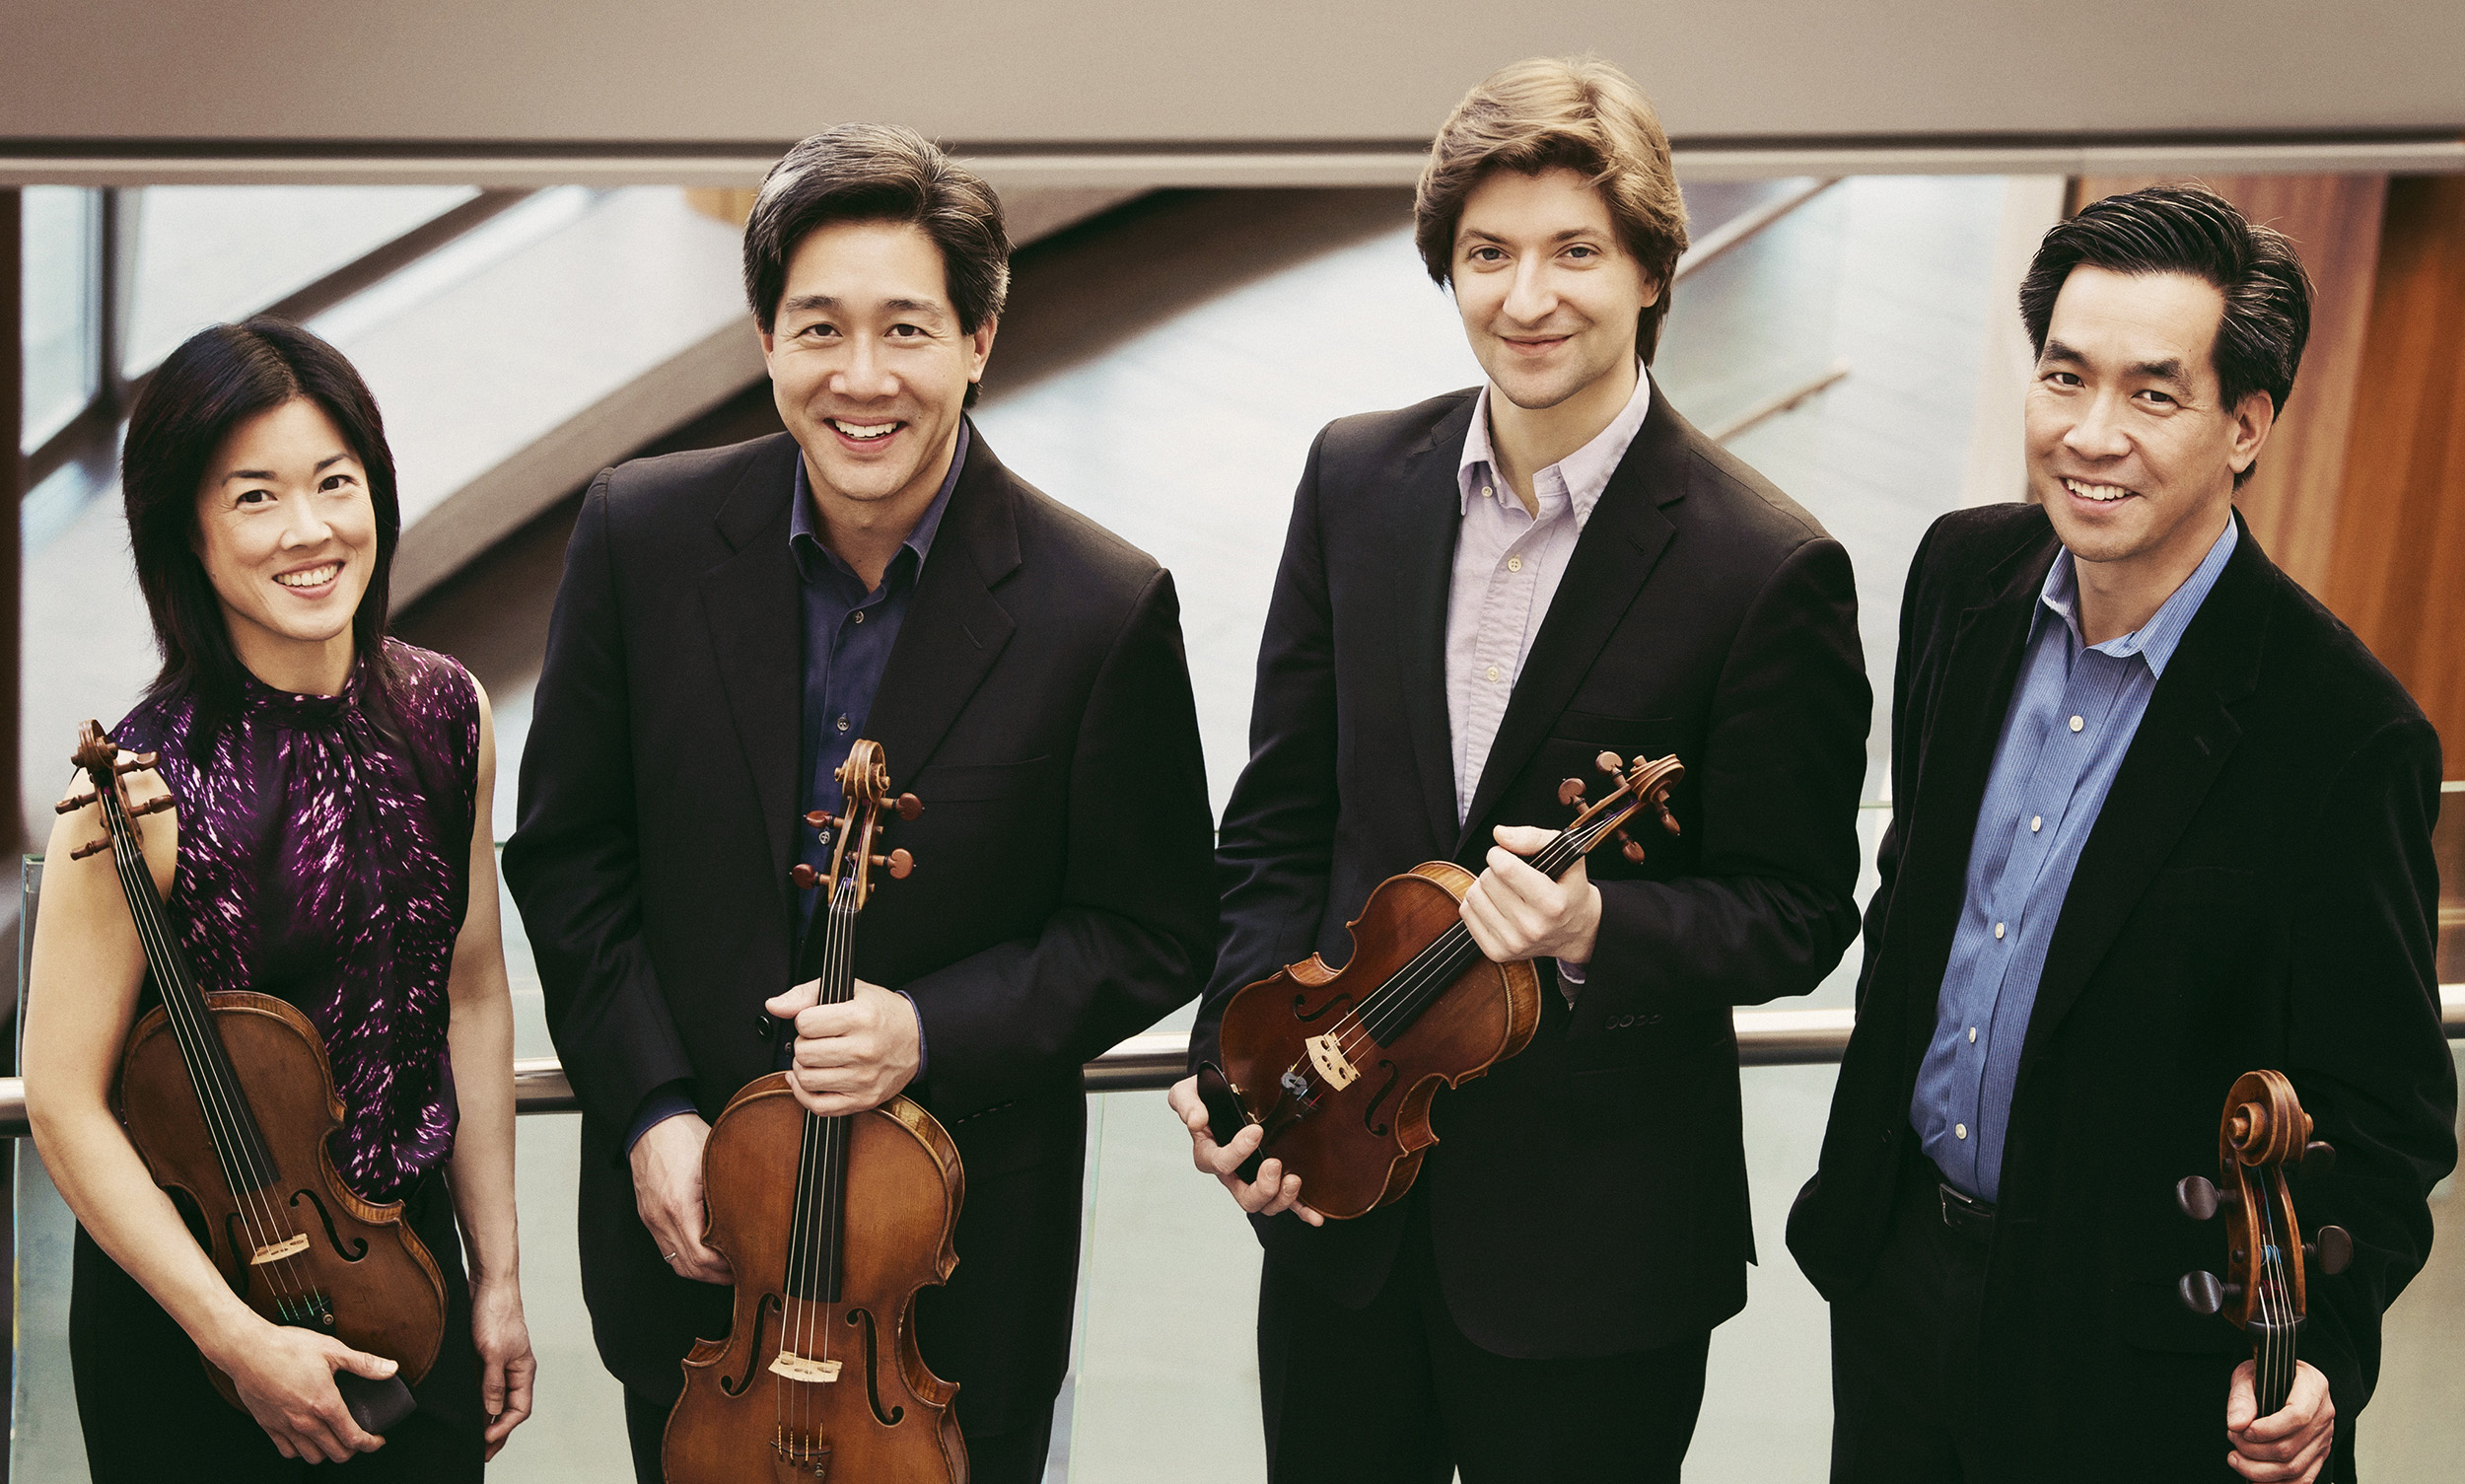 Ying Quartet, left to right: Janet Ying (violin), Phillip Ying (viola) new first violinist Robin Scott, and David Ying (cello), in Wolk Atrium outside Hatch Hall at Eastman Theatre, Eastman School of Music